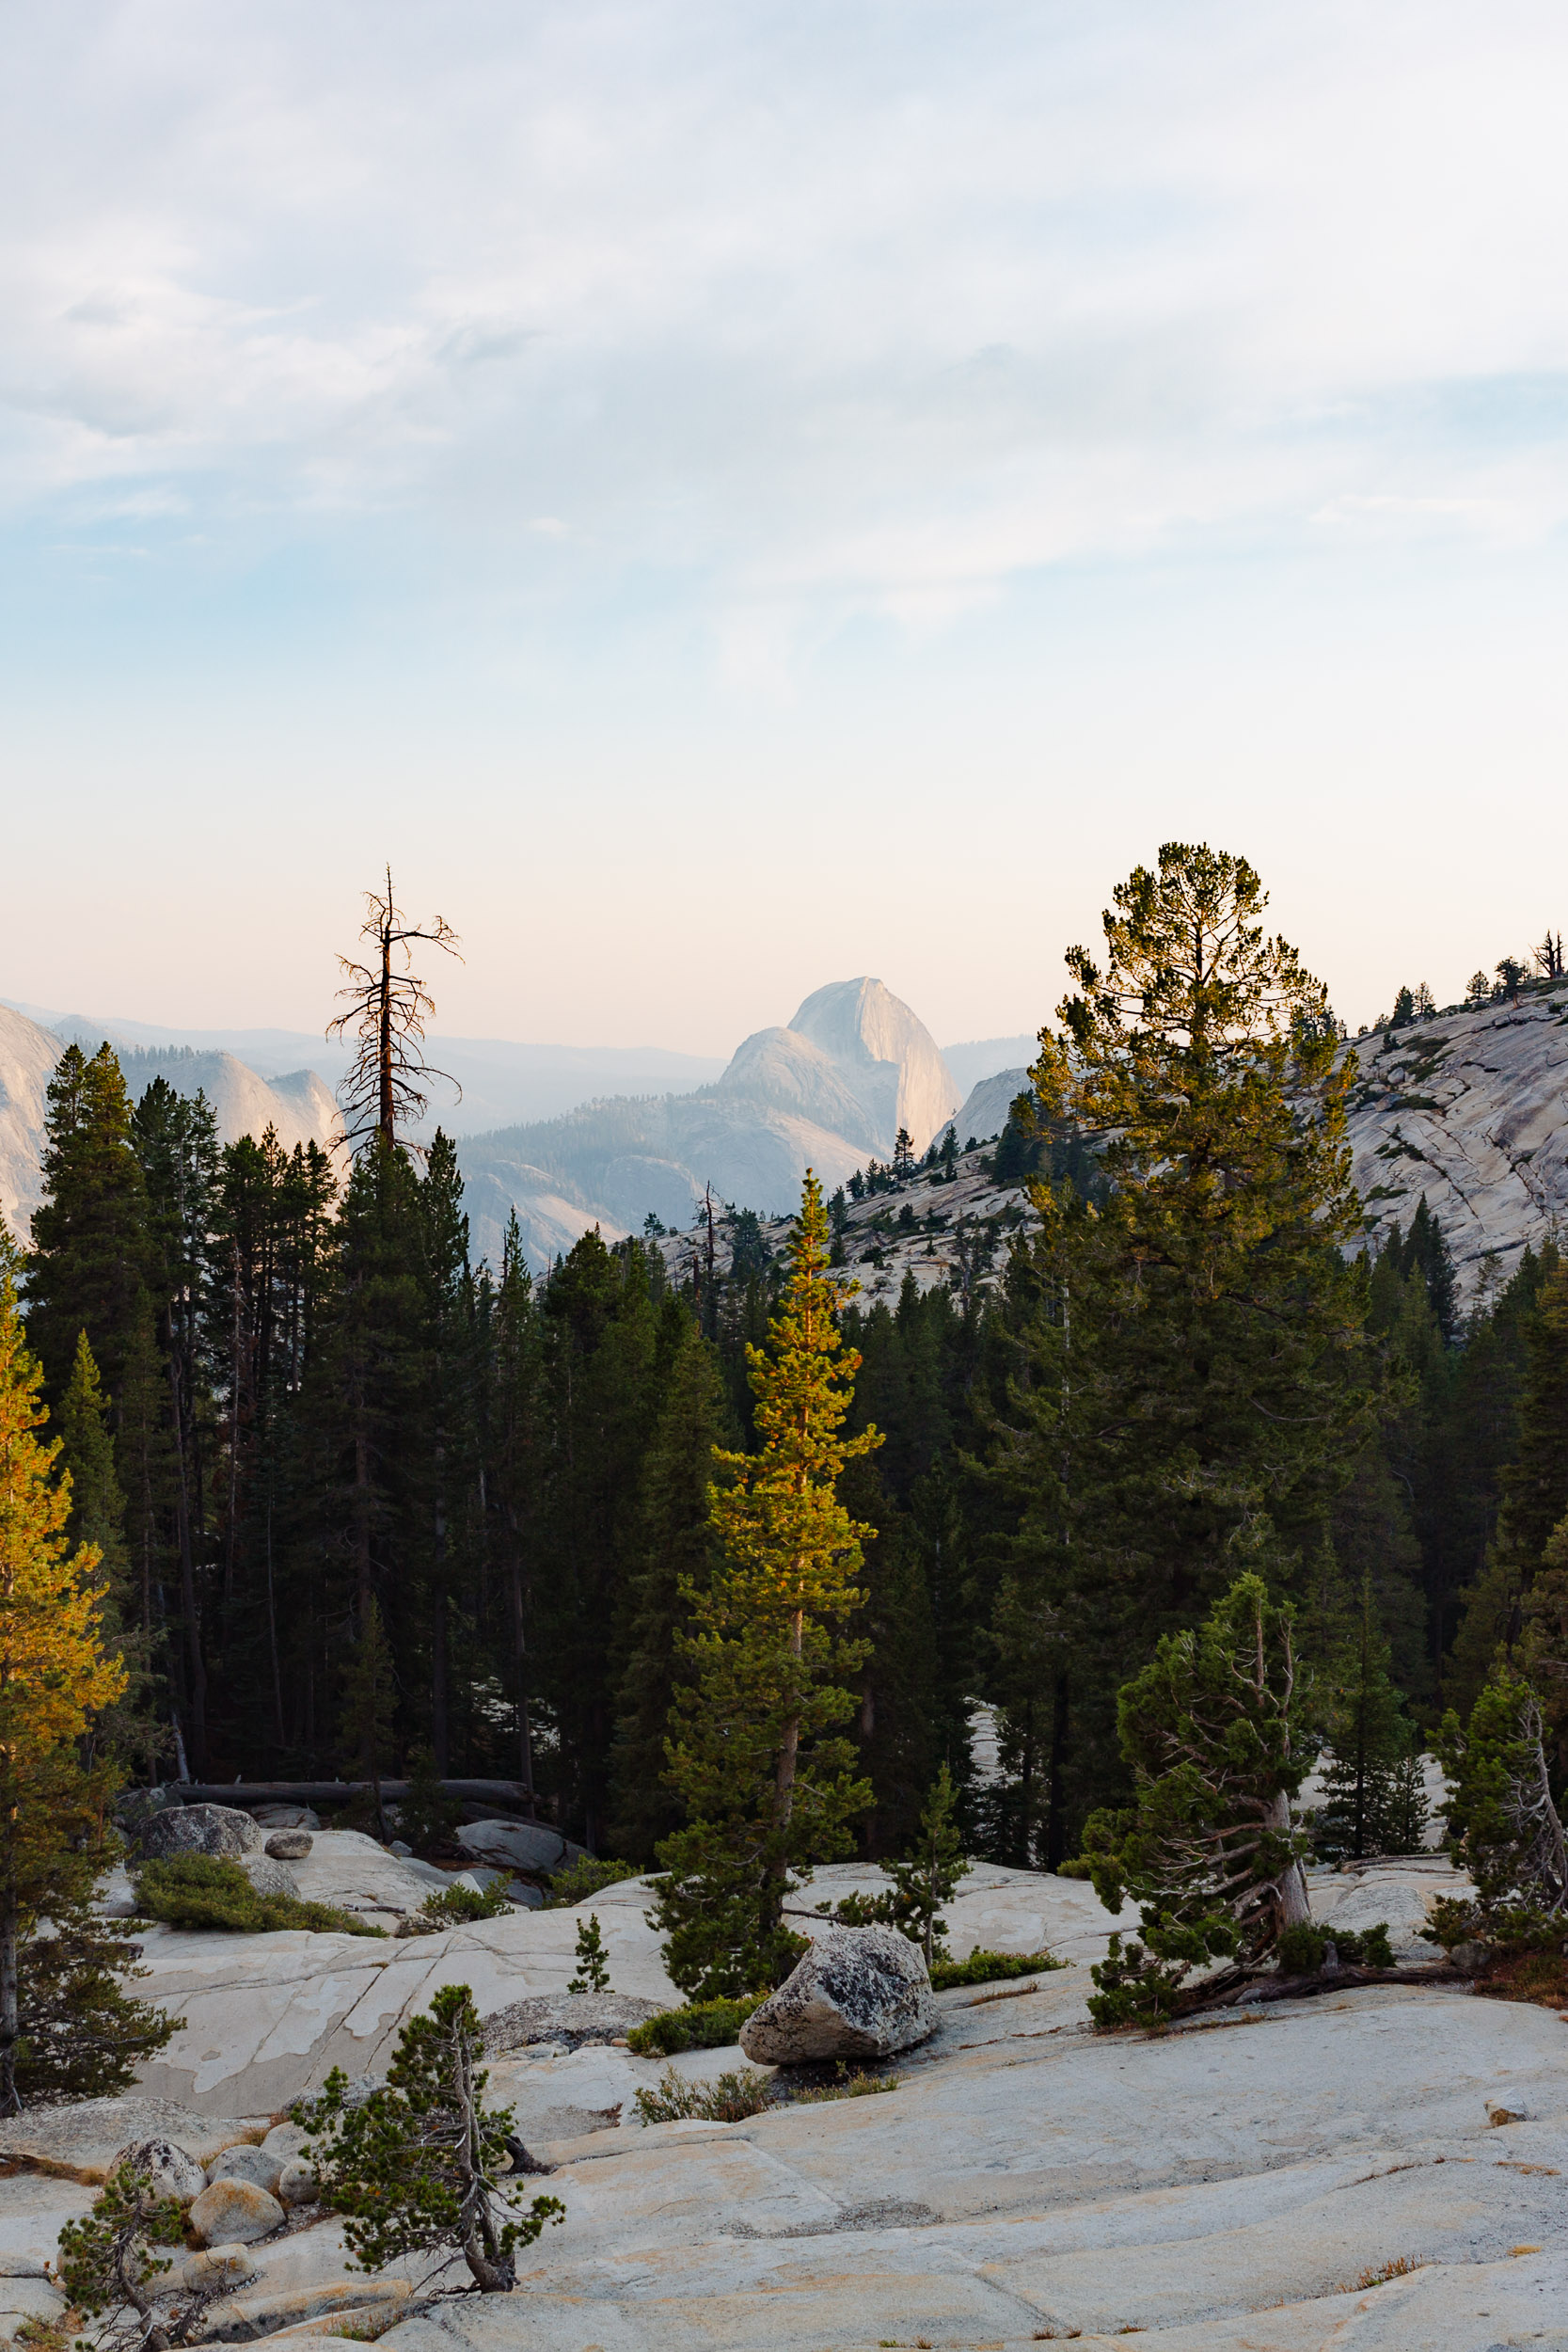 20160820_20160821_YOSEMITE_NATIONAL_PARK-15.jpg